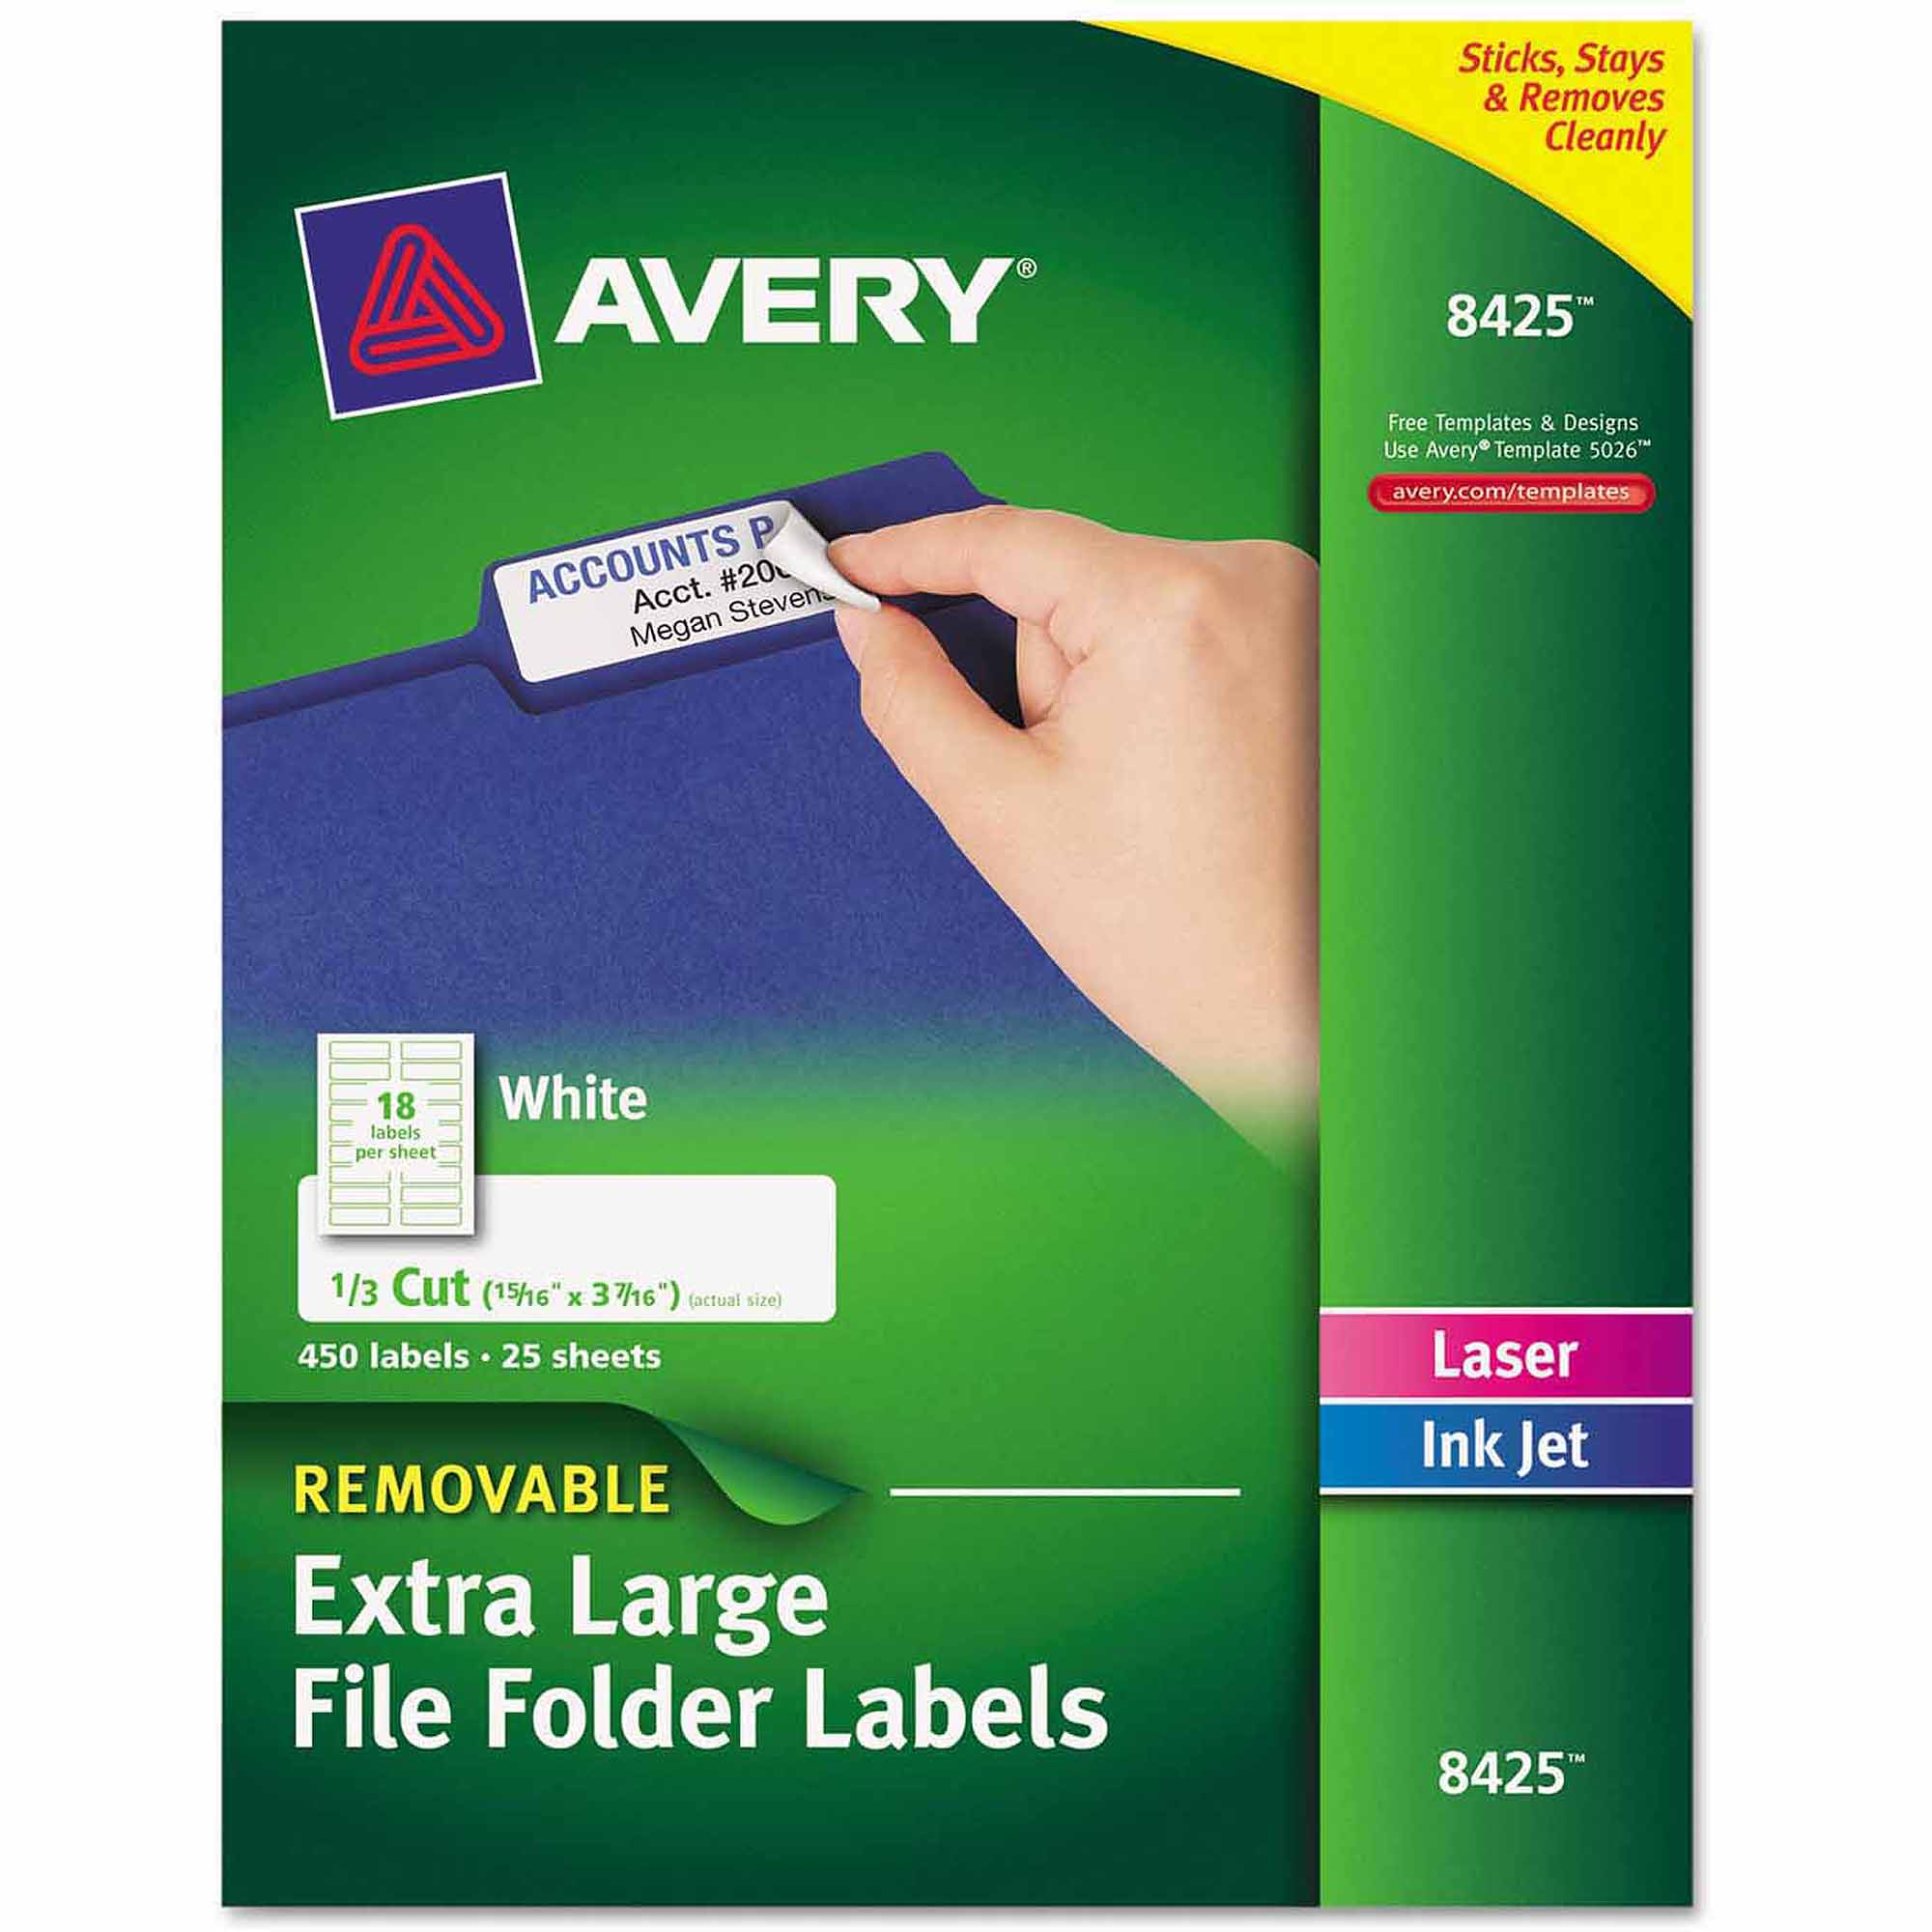 "Avery Removable Extra-Large 1/3-Cut File Folder Labels, 15/16"" x 3-7/16"", White, 450-Pack"